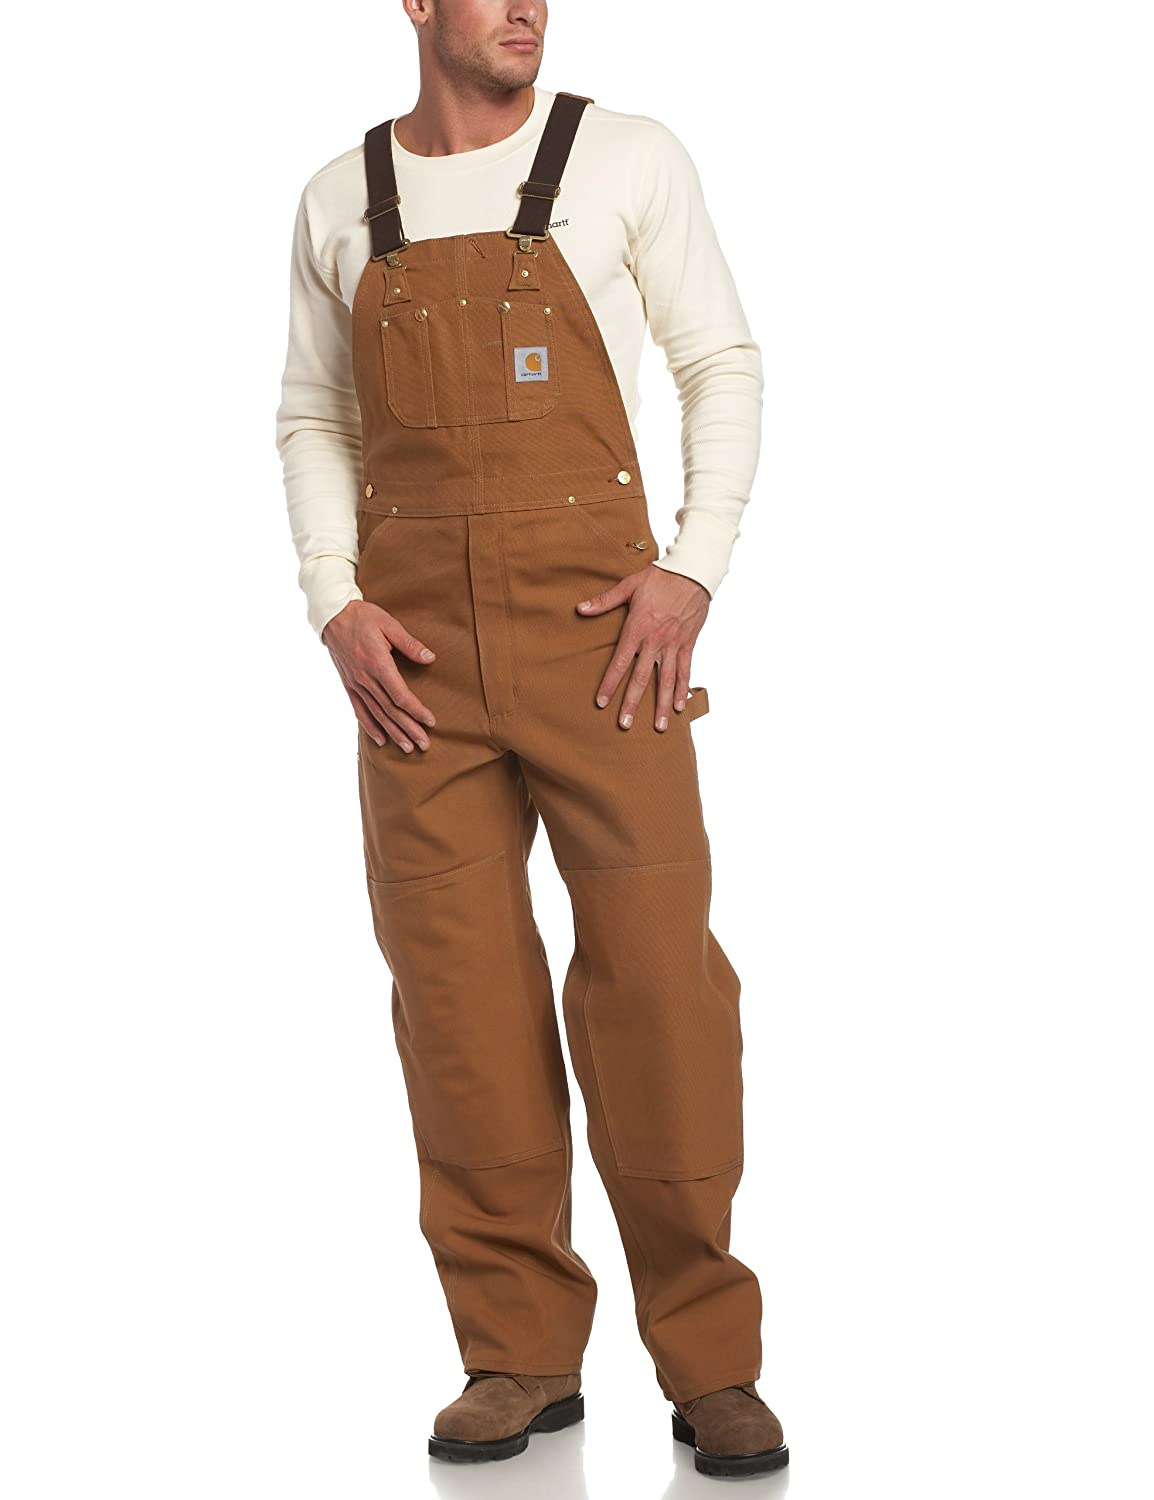 Carhartt Mens Big & Tall Duck Bib Overalls Unlined R01 R01-BRN